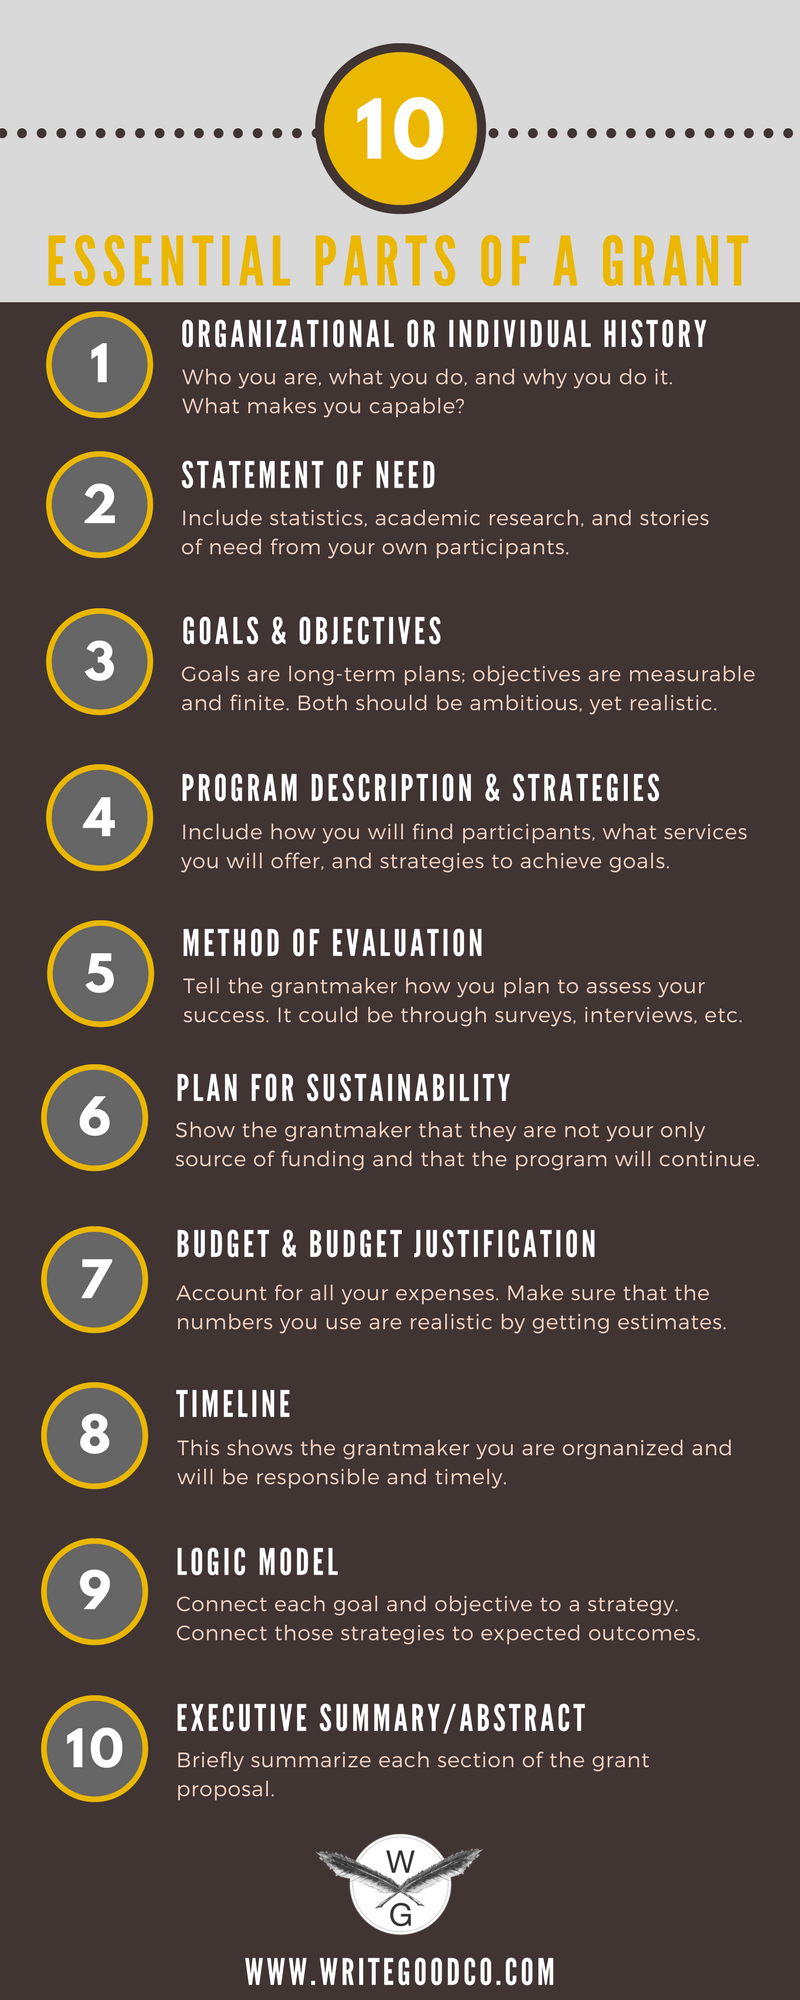 10 Essential Parts of a Grant | Our Grant Writing Advice